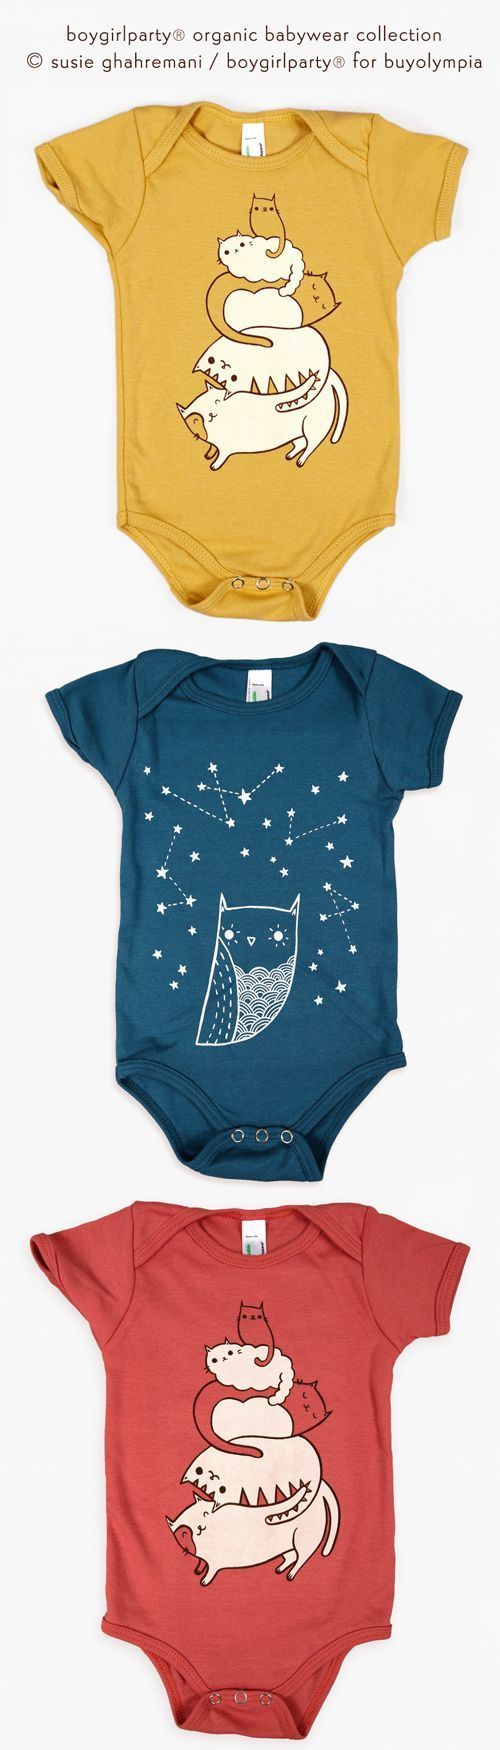 Shop for baby wear and other clothing at the boygirlparty shop